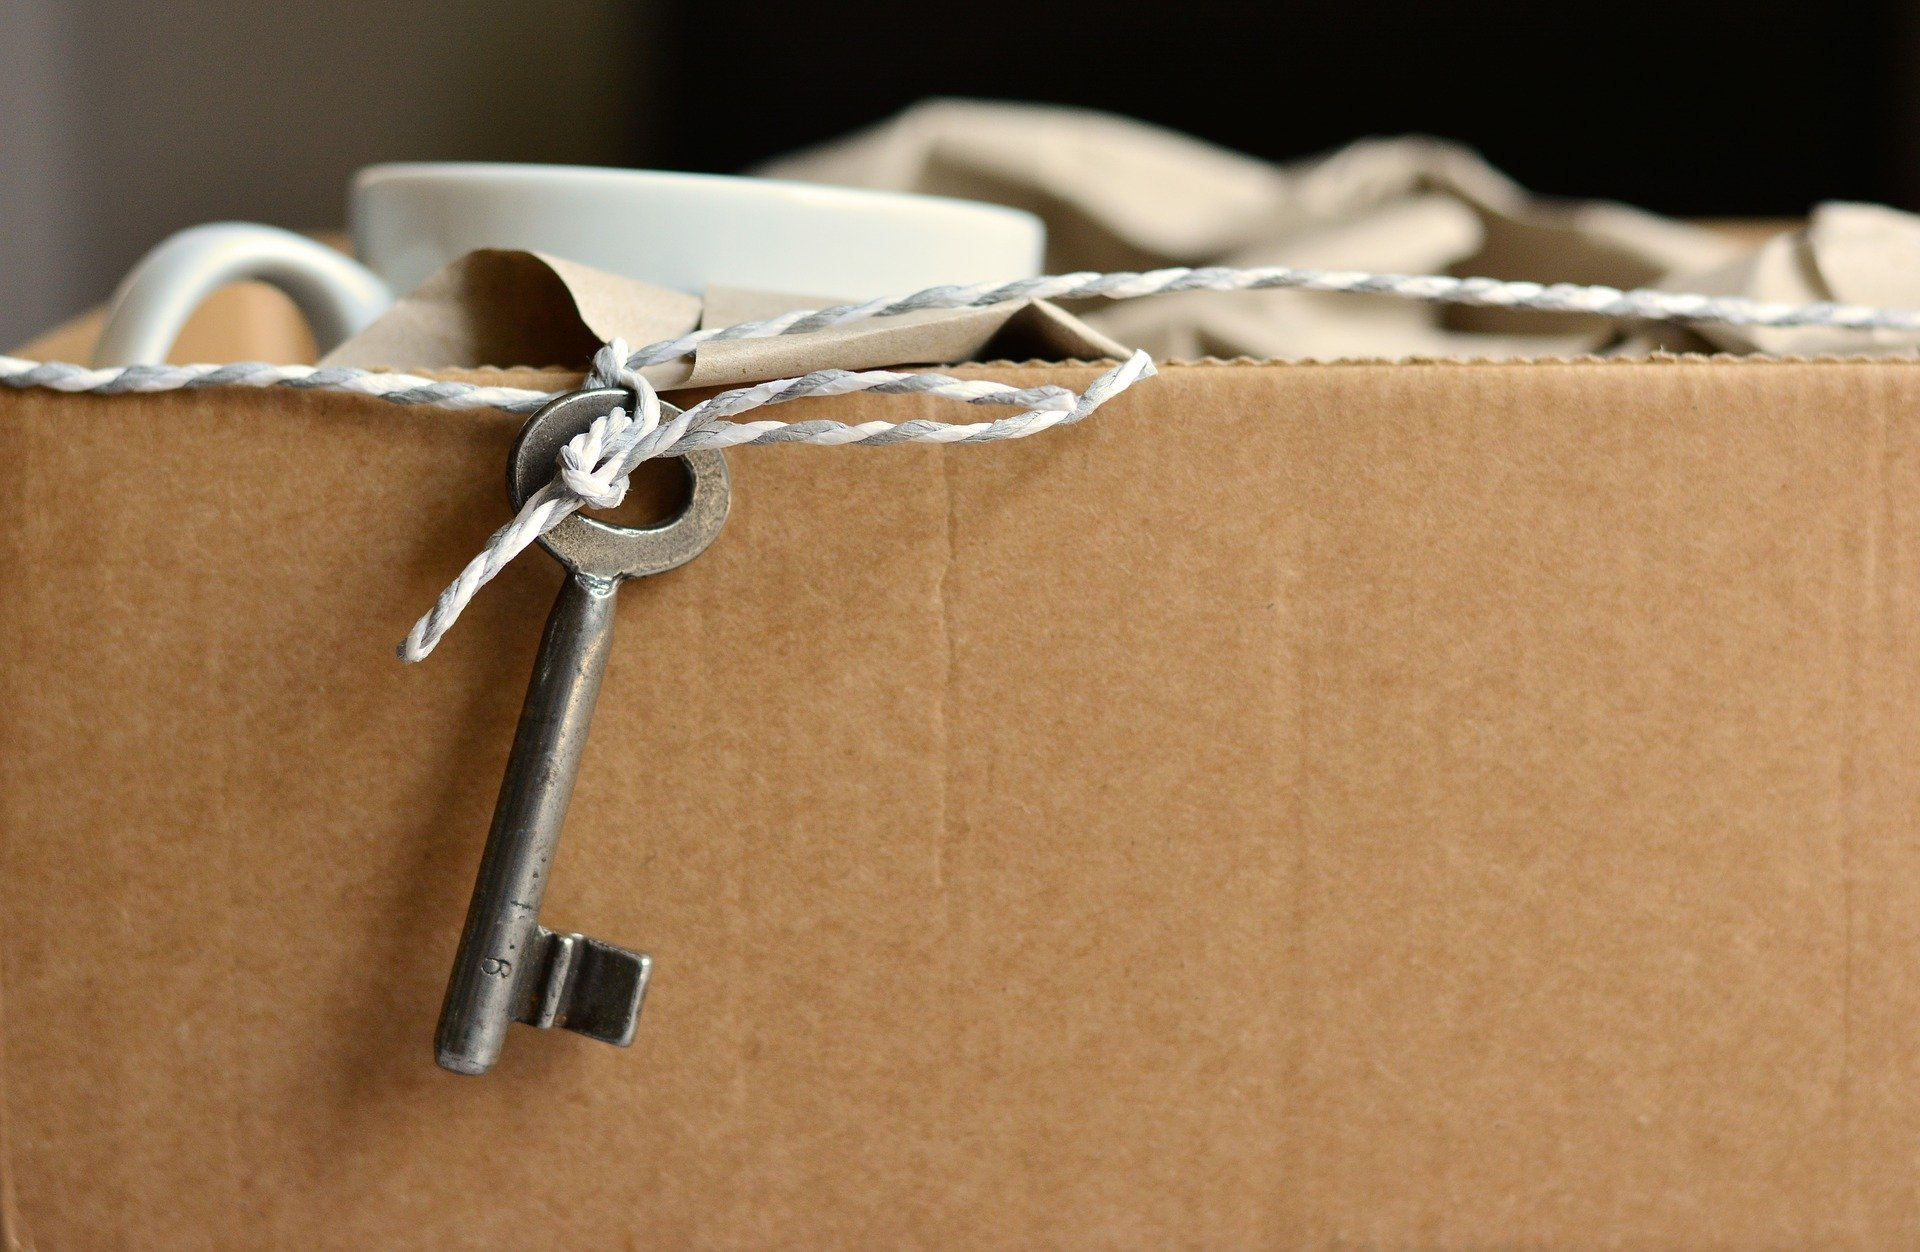 cardboard box with a key